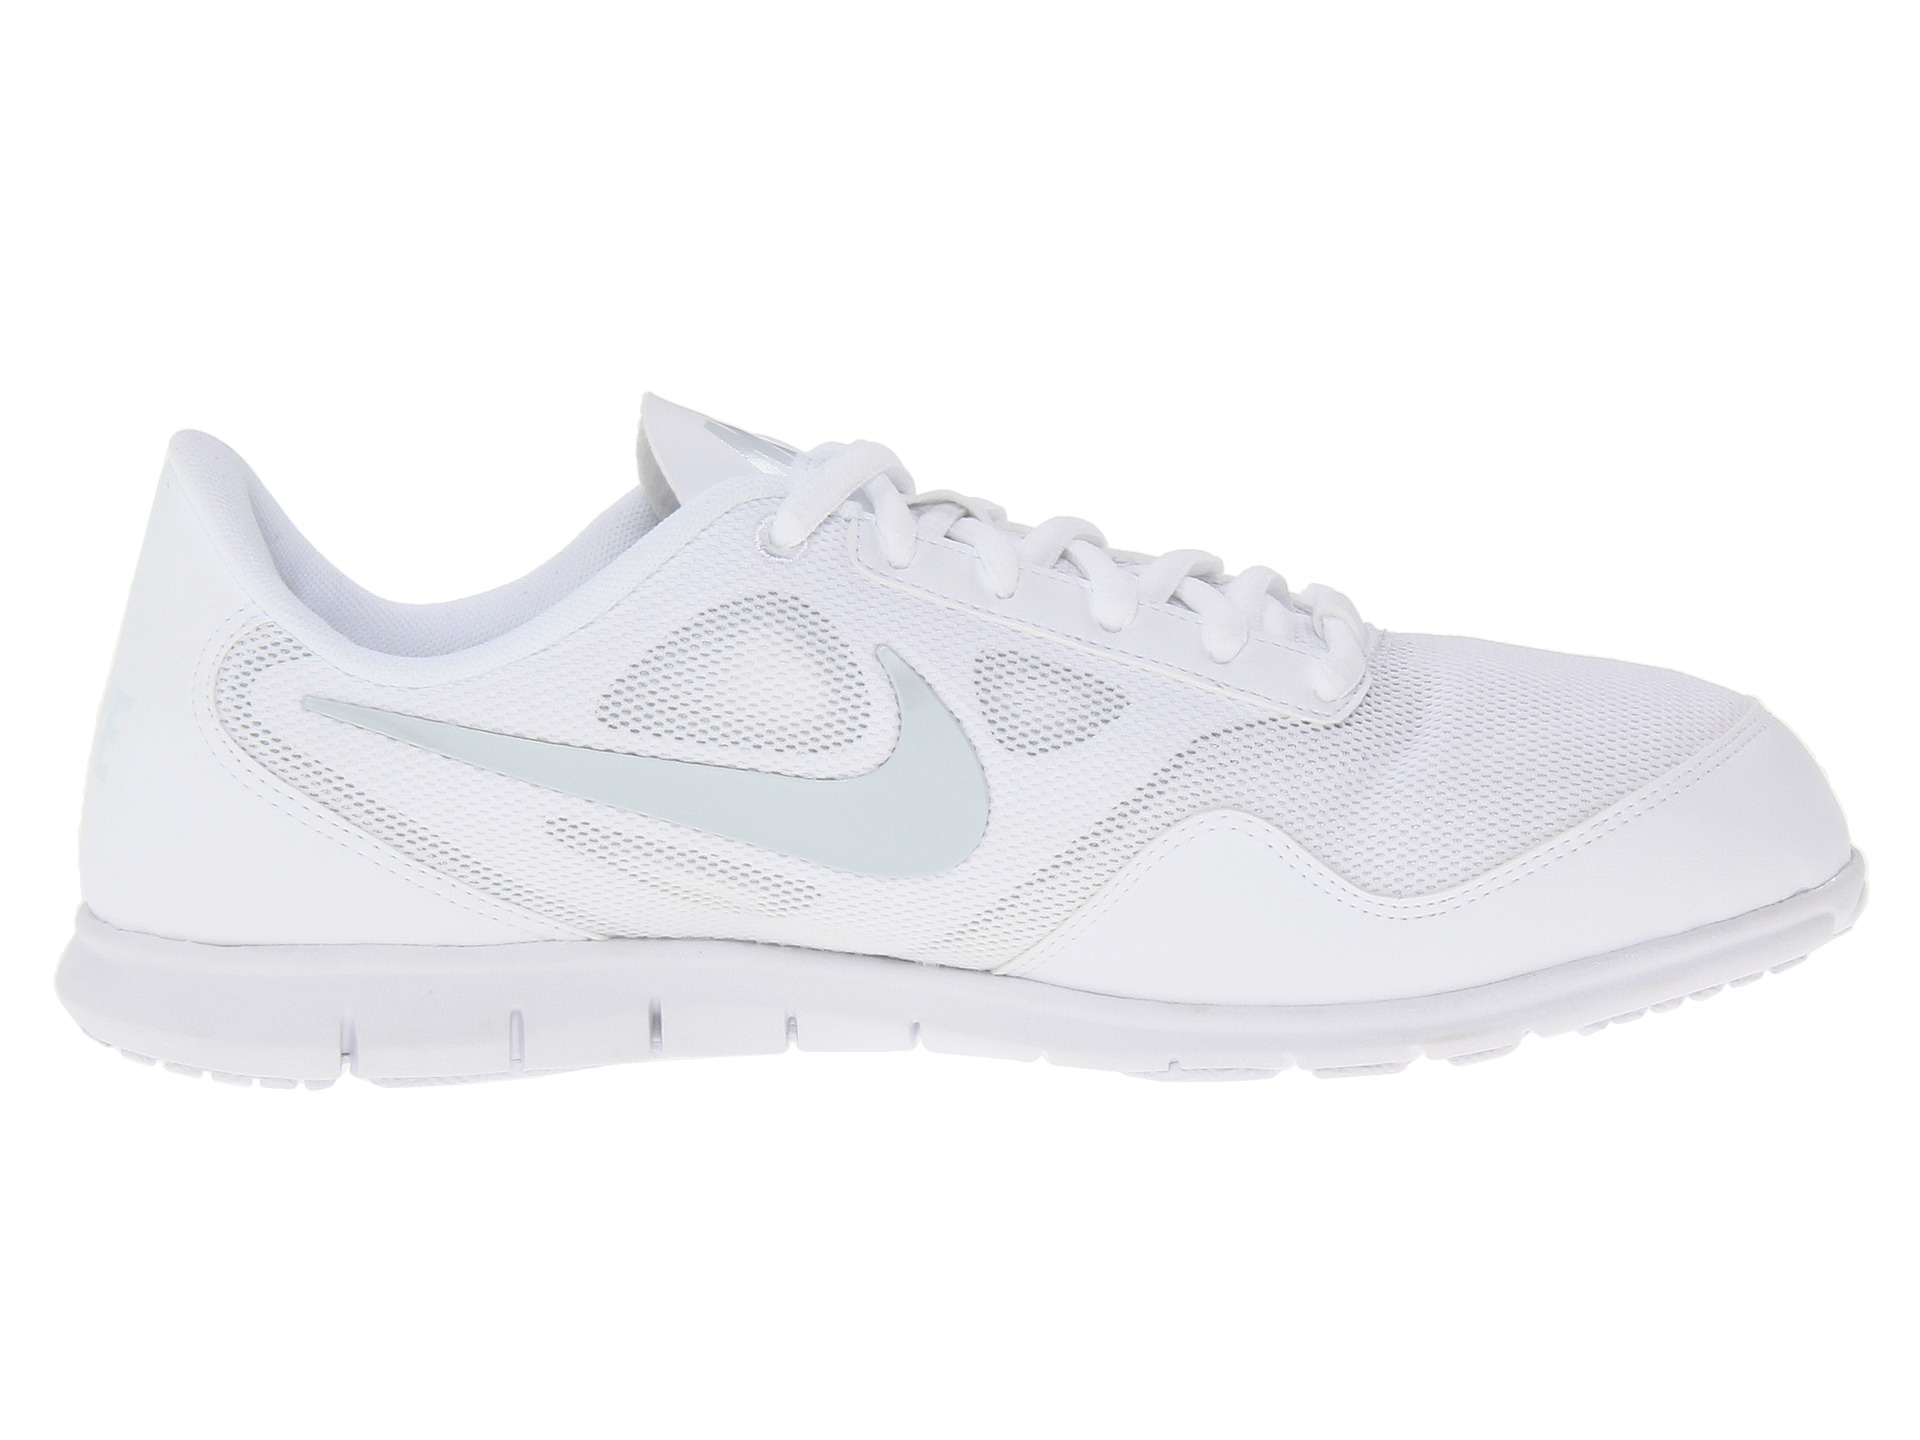 Nike Sideline Cheer Shoes Profile Photo